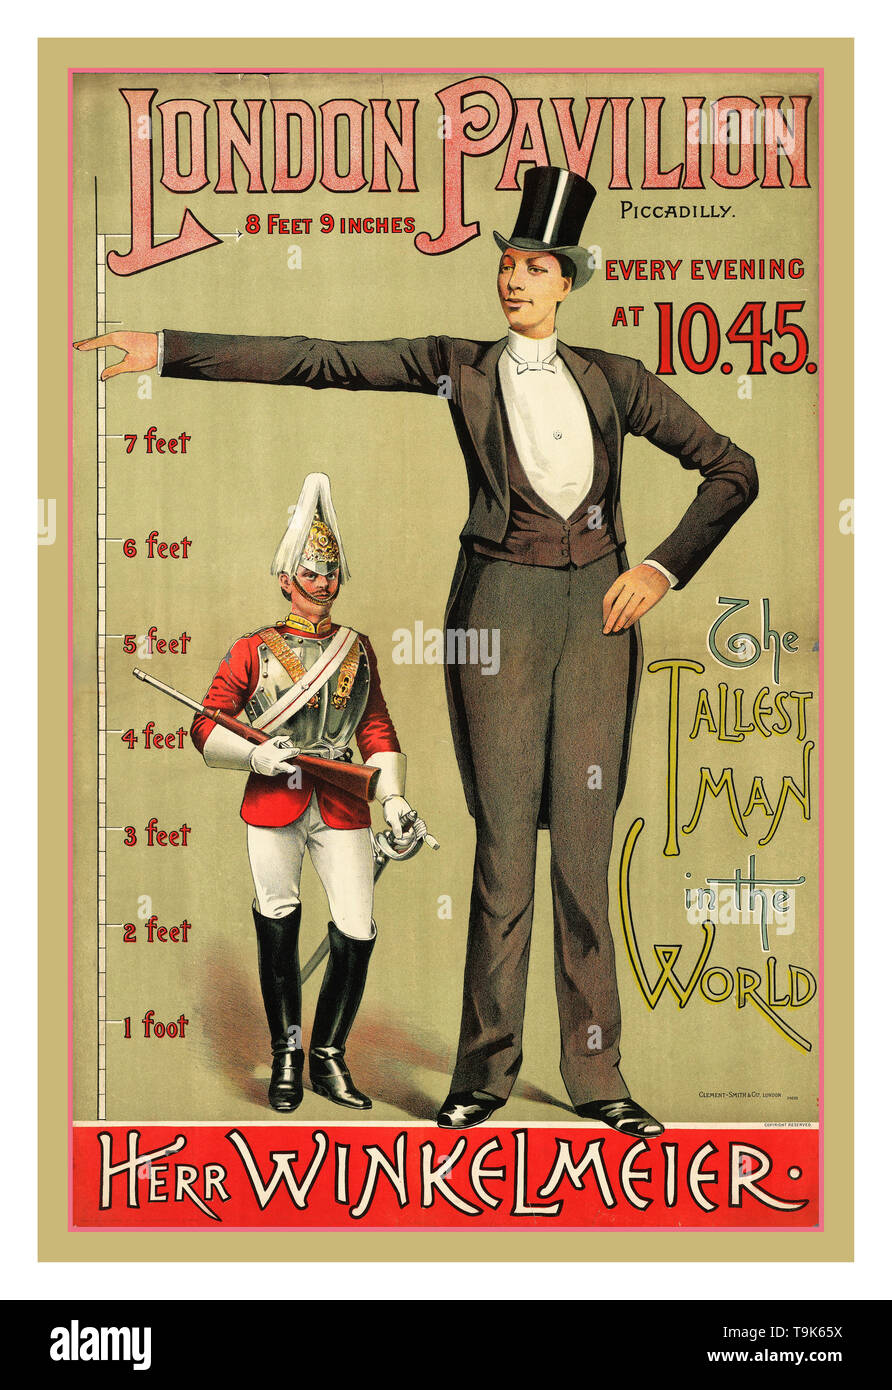 Vintage 1880's entertainment Poster  London Pavilion, Piccadilly London every evening at 10.45  'The tallest man in the world' : 'Herr Winkelmeier'. Giant Freak Show Poster advertising the appearance of Herr Winkelmeier (who was 8 feet 9 inches tall) in a variety show organised by Mr. E. Villiers at the London Pavilion in Piccadilly in 1885. Born on 27 April 1860 in Lengau, Austria, Winkelmeier was advertised as the tallest man who ever existed. He toured Europe, having previously 'created... a sensation at the Folies Bergeres, Paris' and was introduced to Queen Victoria in 1887 - Stock Image